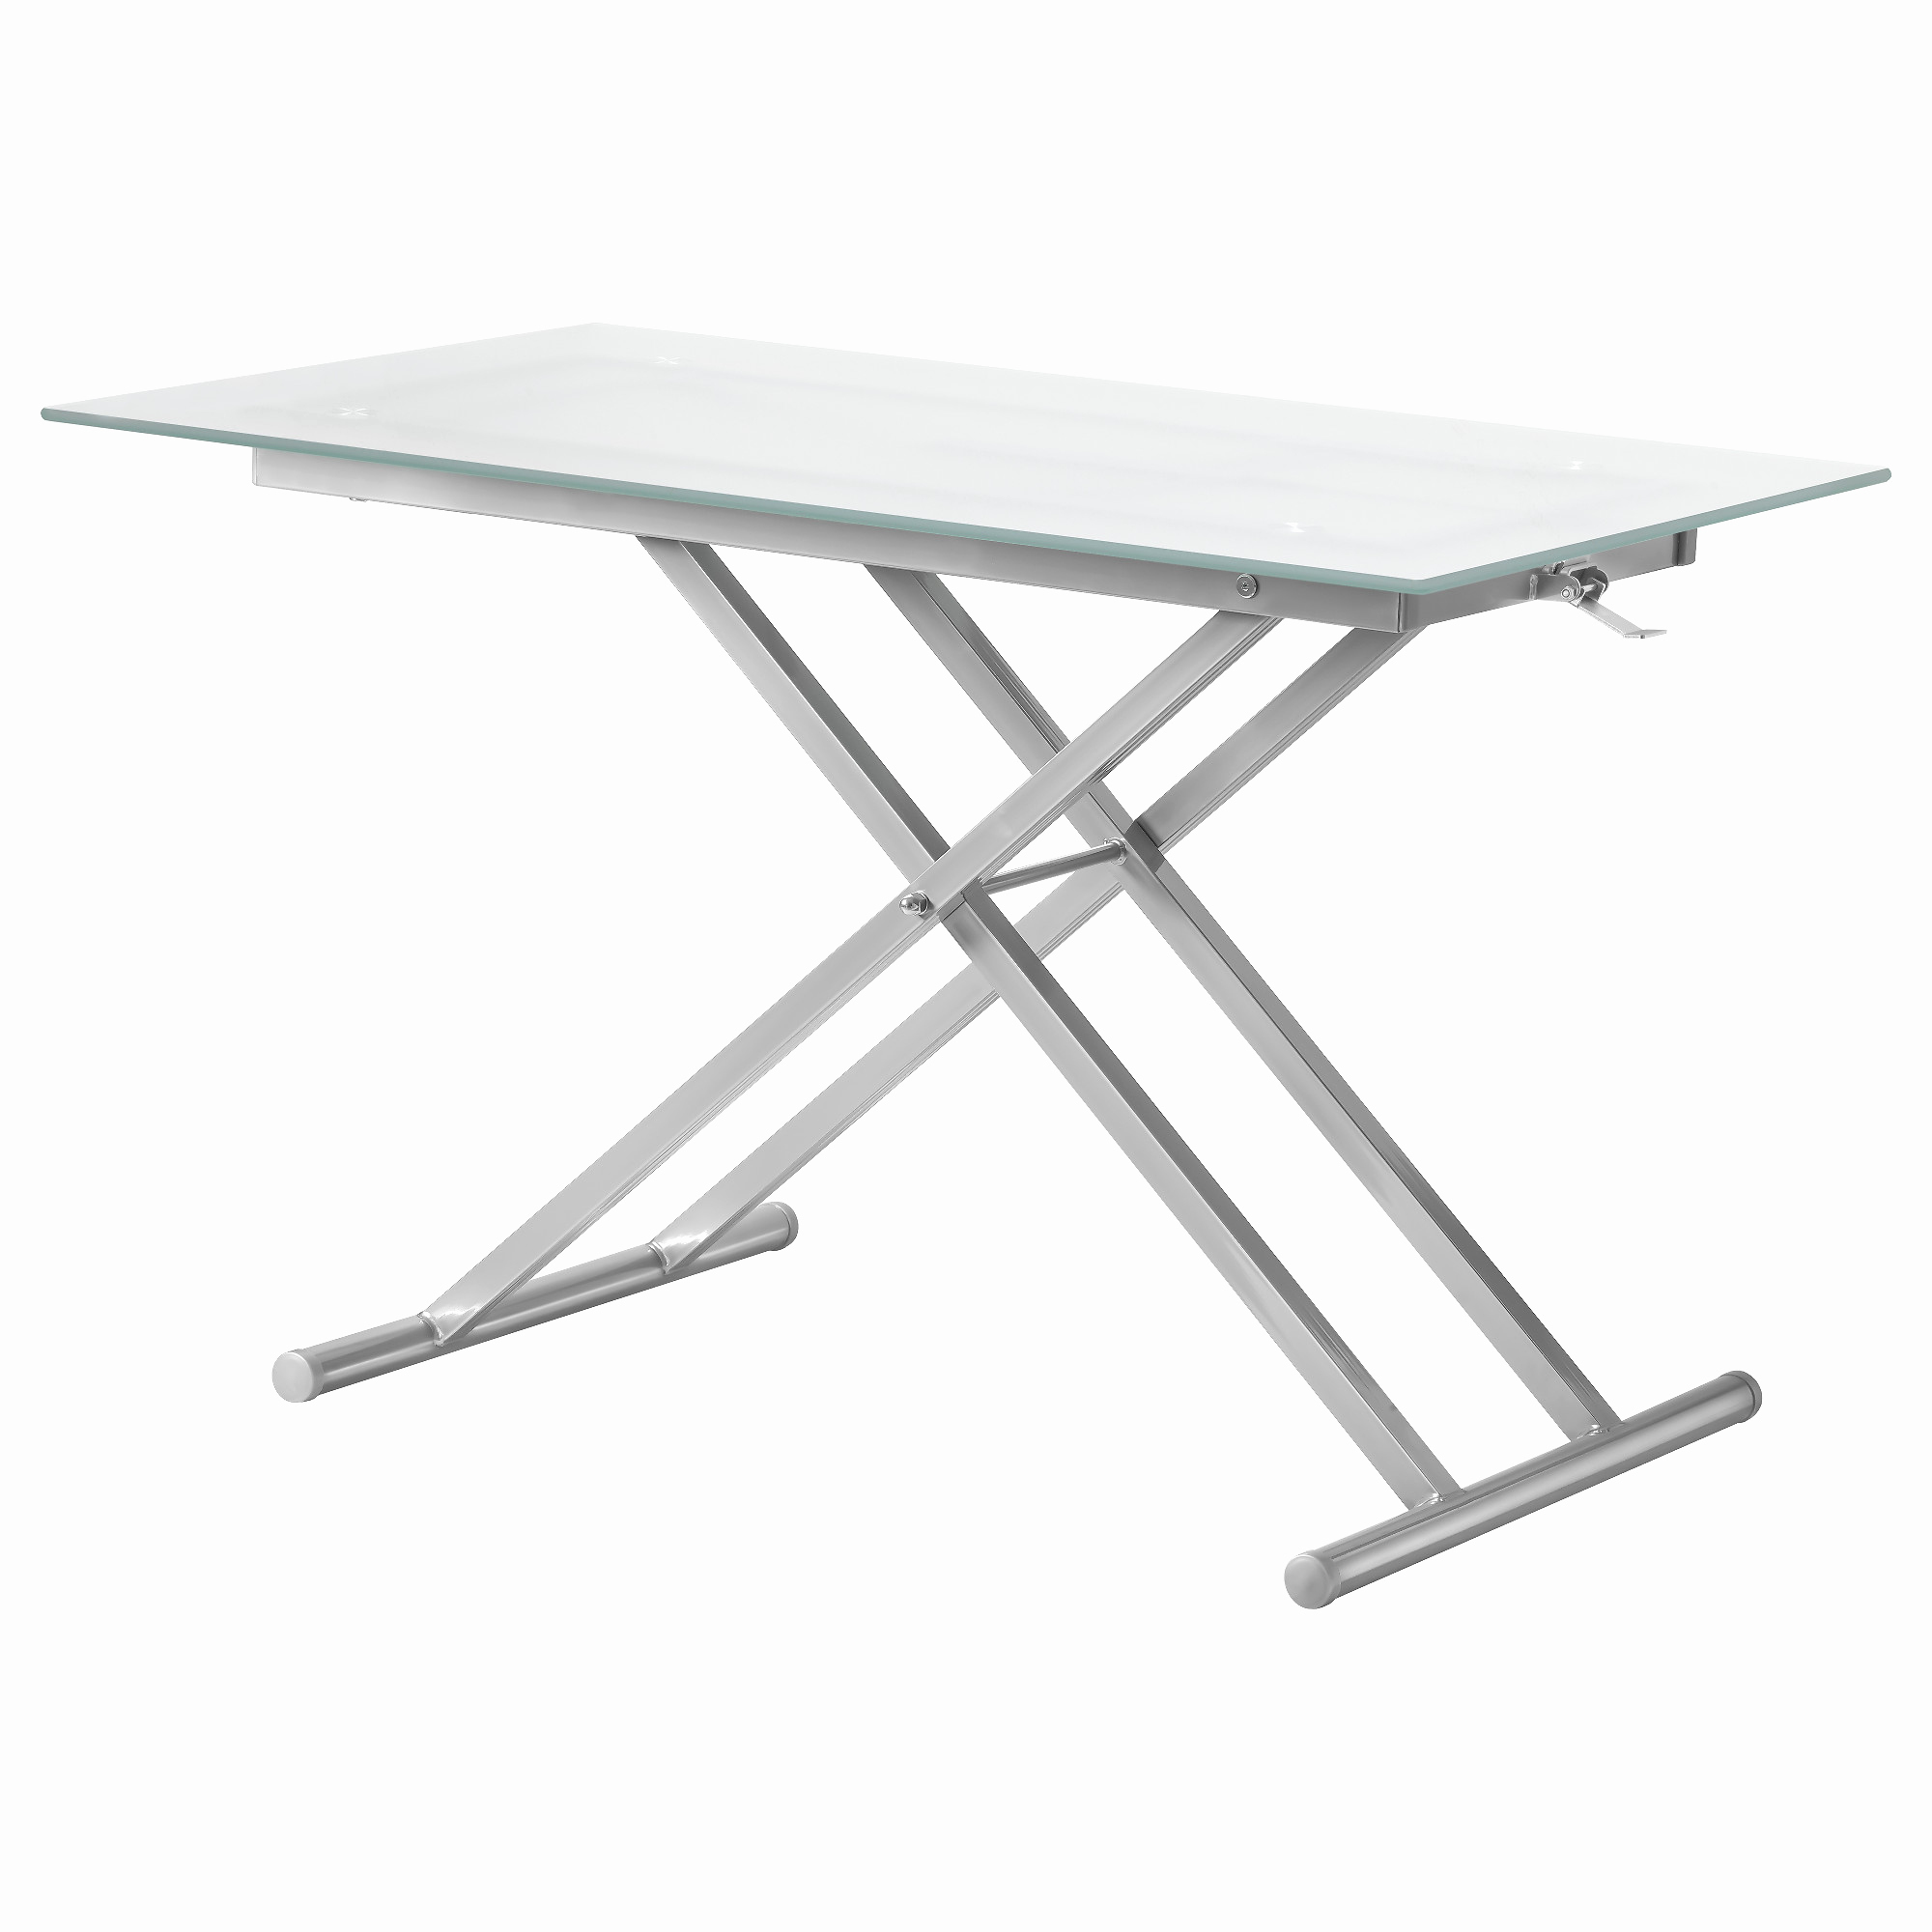 Table Carree Ikea Table Basse Grise Ikea Meilleur De Photos Table Carrée Ikea Génial